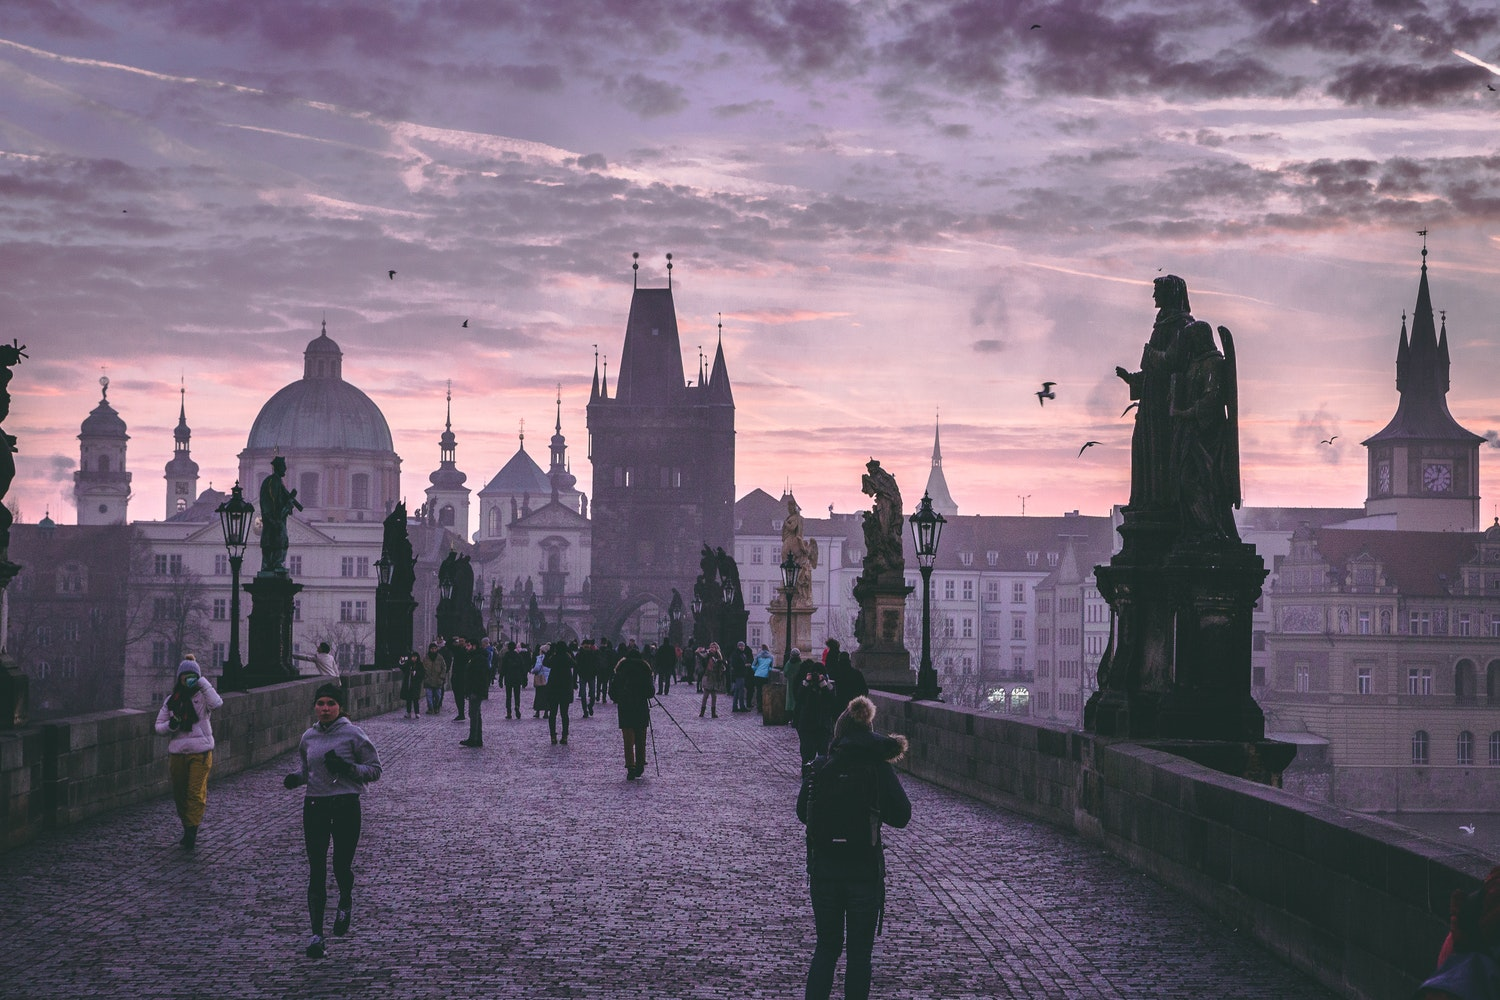 Charles Bridge, Czechia